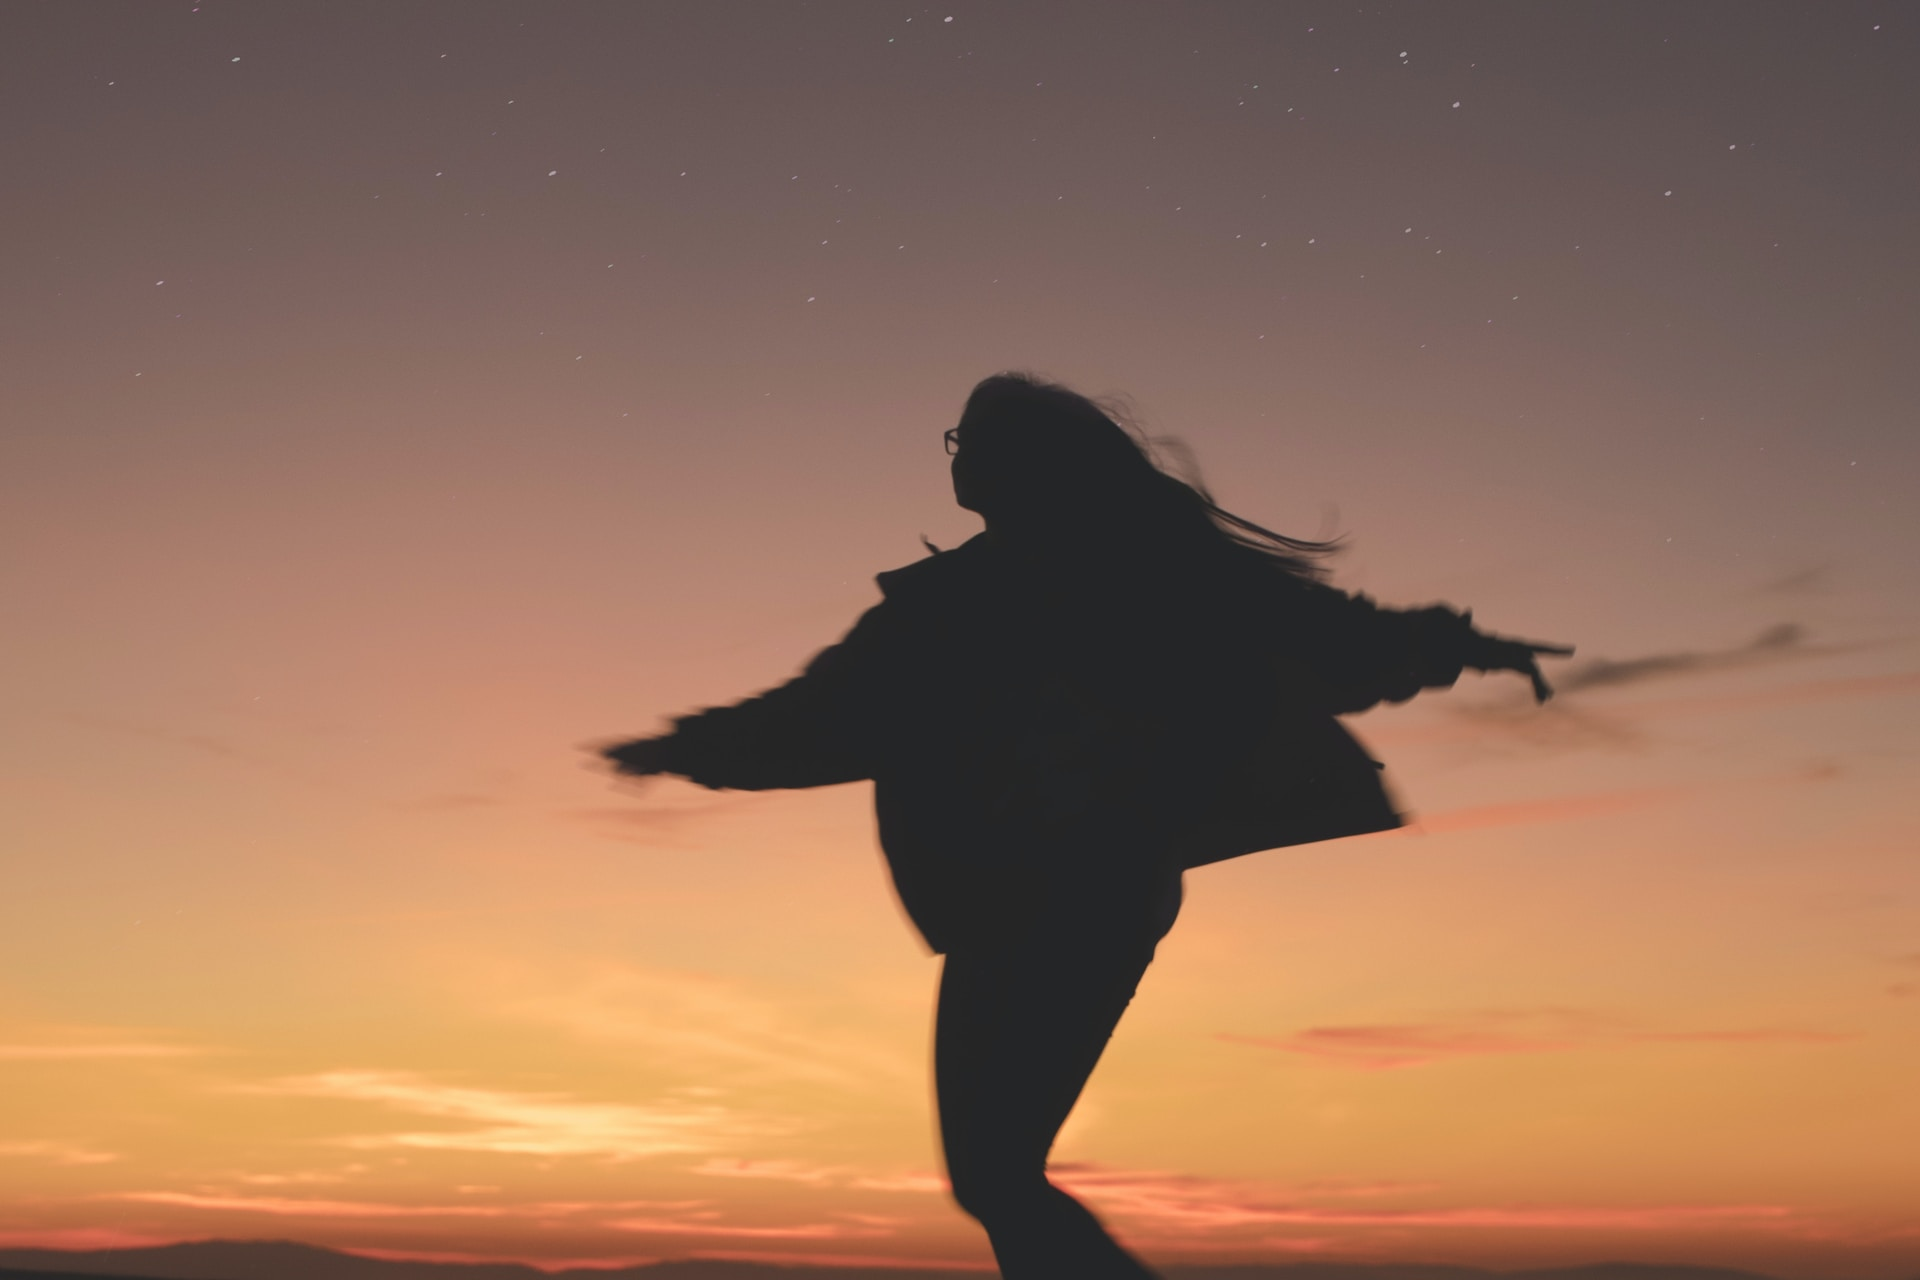 silhouette of woman running during golden hour